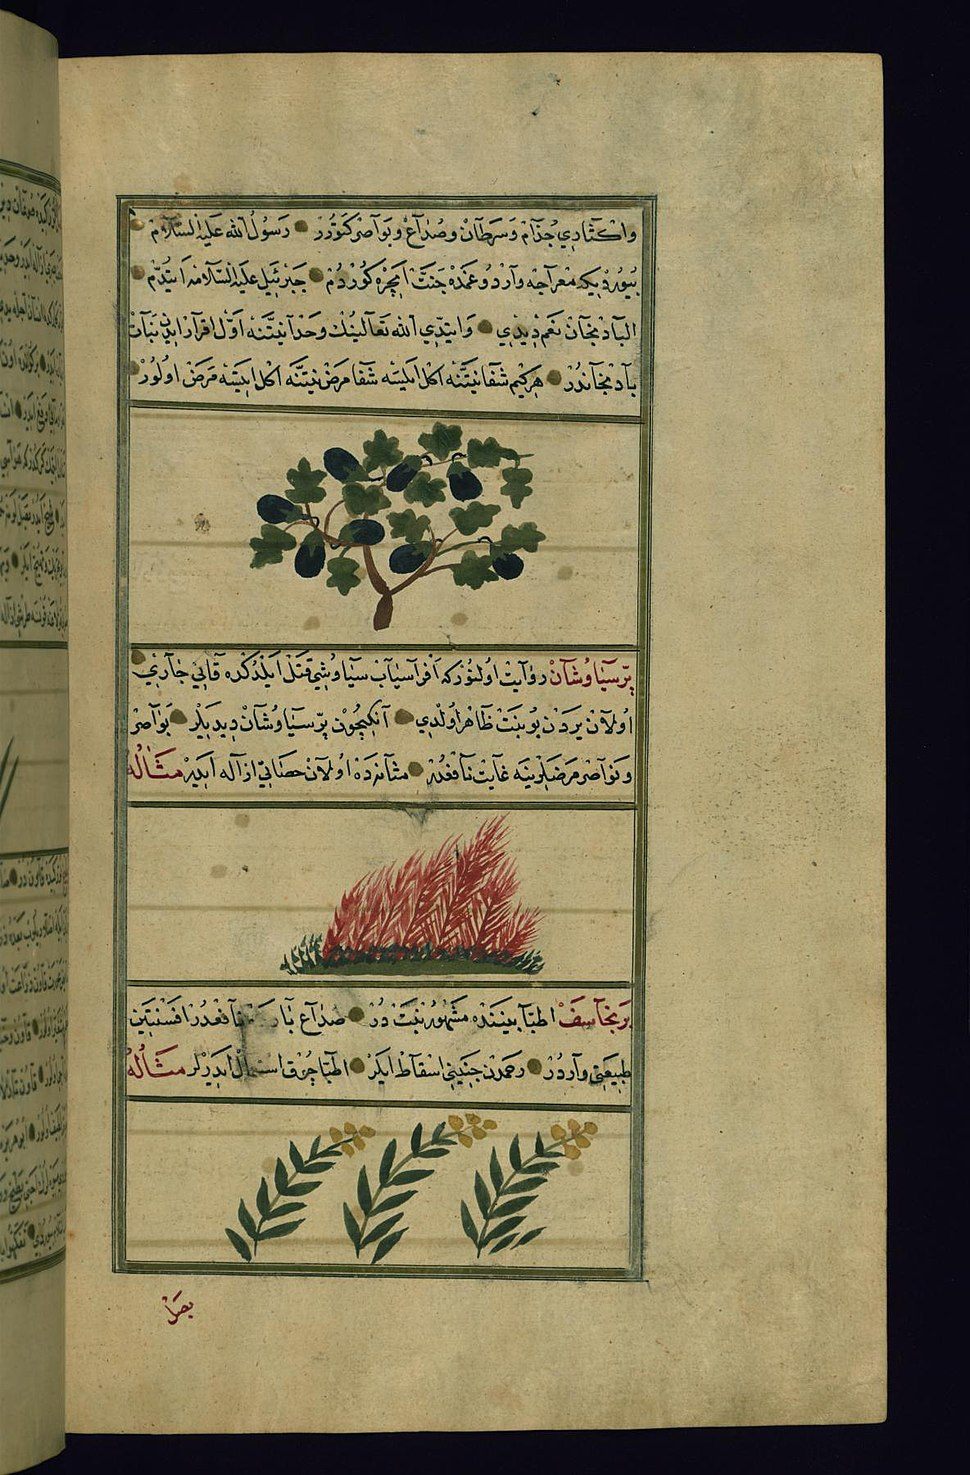 Muhammad ibn Muhammad Shakir Ruzmah-'i Nathani - An Eggplant, a Plant Called Parsiyavushan, and Dungwort - Walters W659225B - Full Page